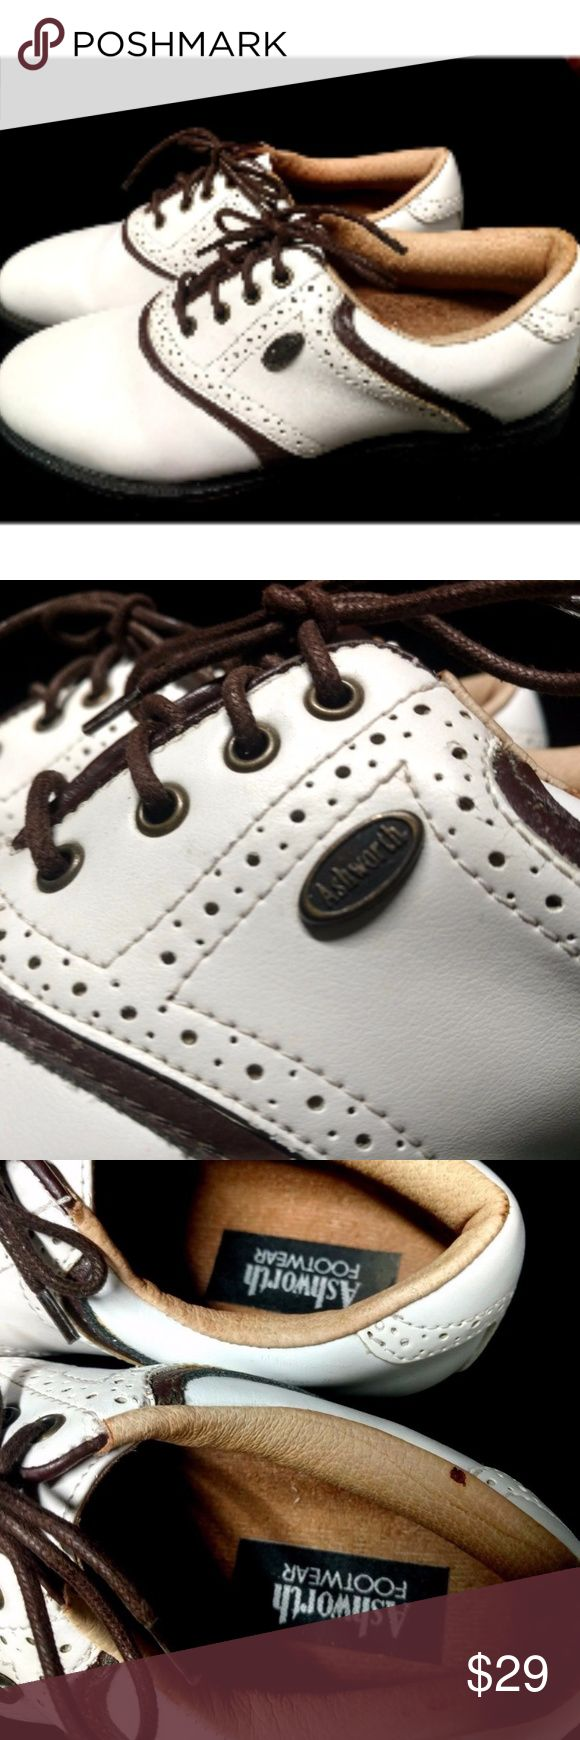 Women's Ashworth Golf Shoes ASHWORTH GOLF SHOES   COLOR: WHITE & BROWN EXCELLENT CONDITION! SIZE: 7 1/2   MADE IN BRAZIL Ashford Shoes Athletic Shoes